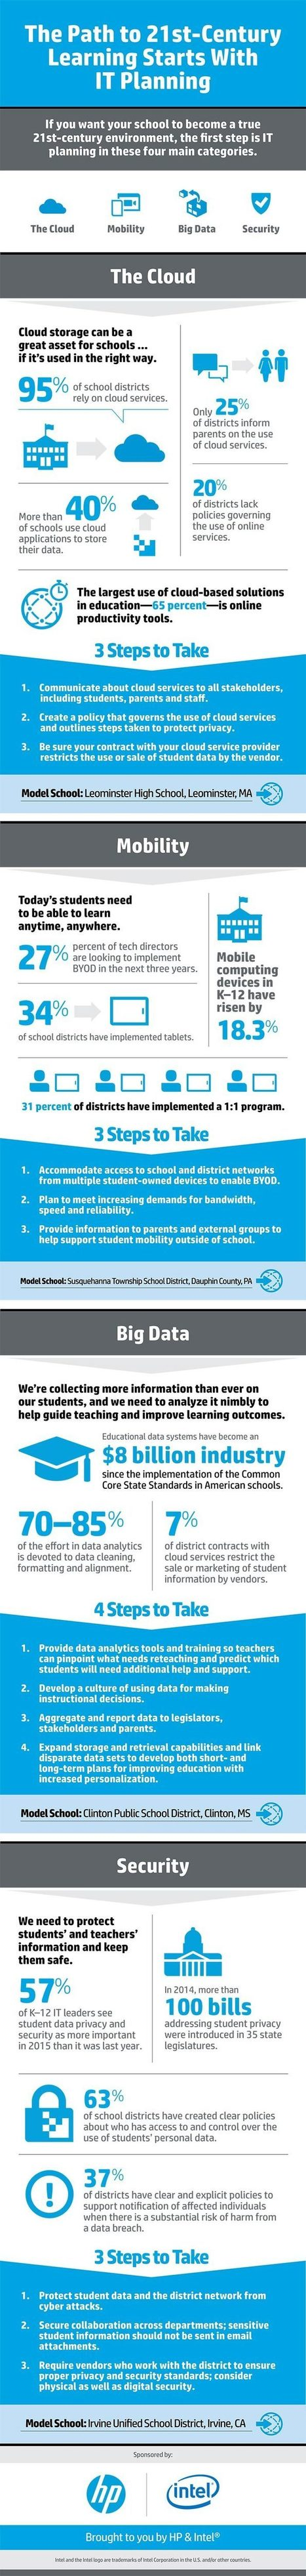 21st Century Learning Starts With IT Planning (Infographic) | Aprendiendo a Distancia | Scoop.it